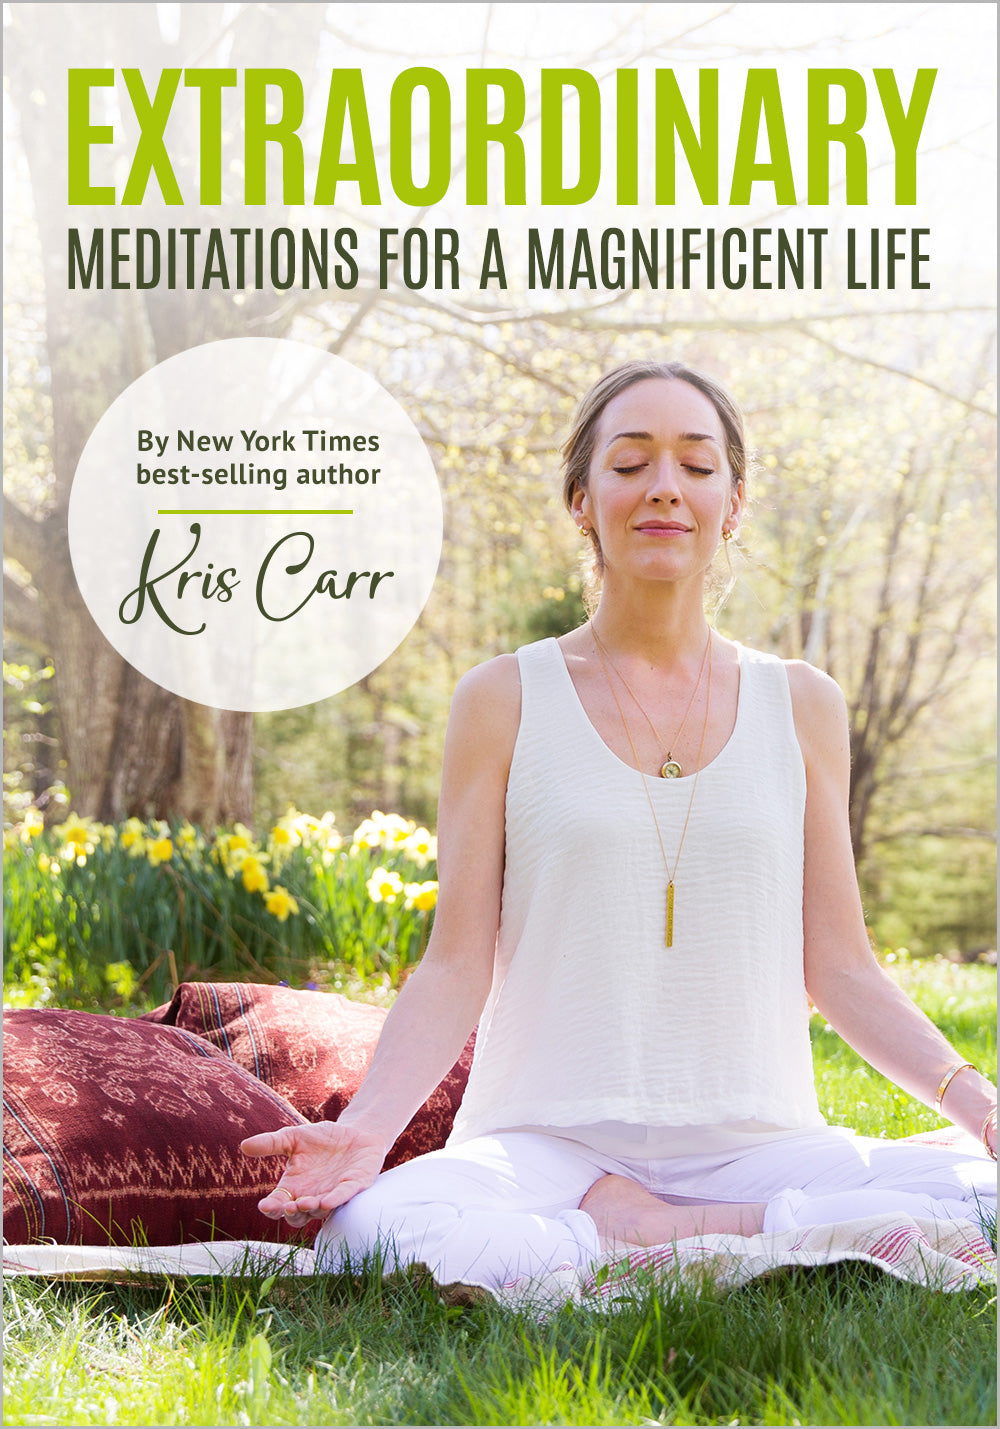 Extraordinary: Meditations for a Magnificent Life Digital Album